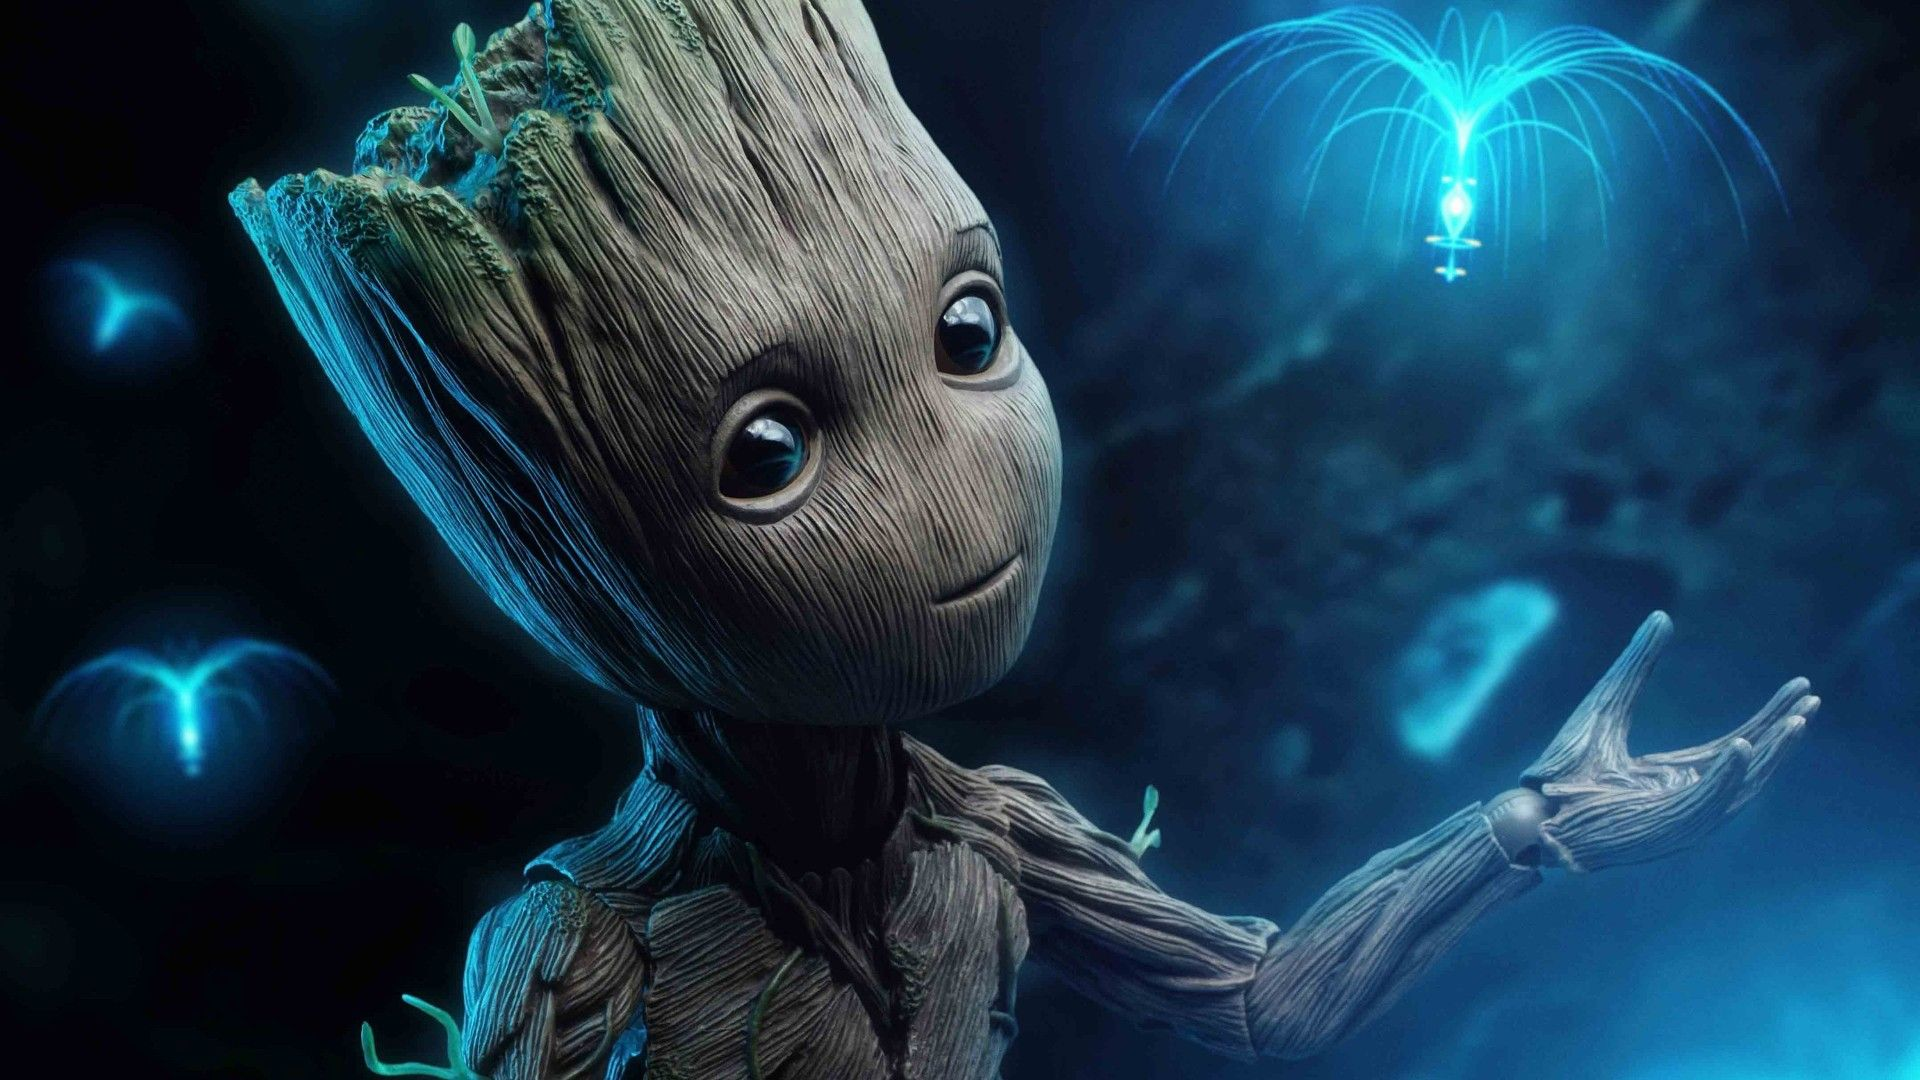 Pin By Royalty Free On I Am Groot Free Animated Wallpaper 4k Wallpapers For Pc 4k Desktop Wallpapers